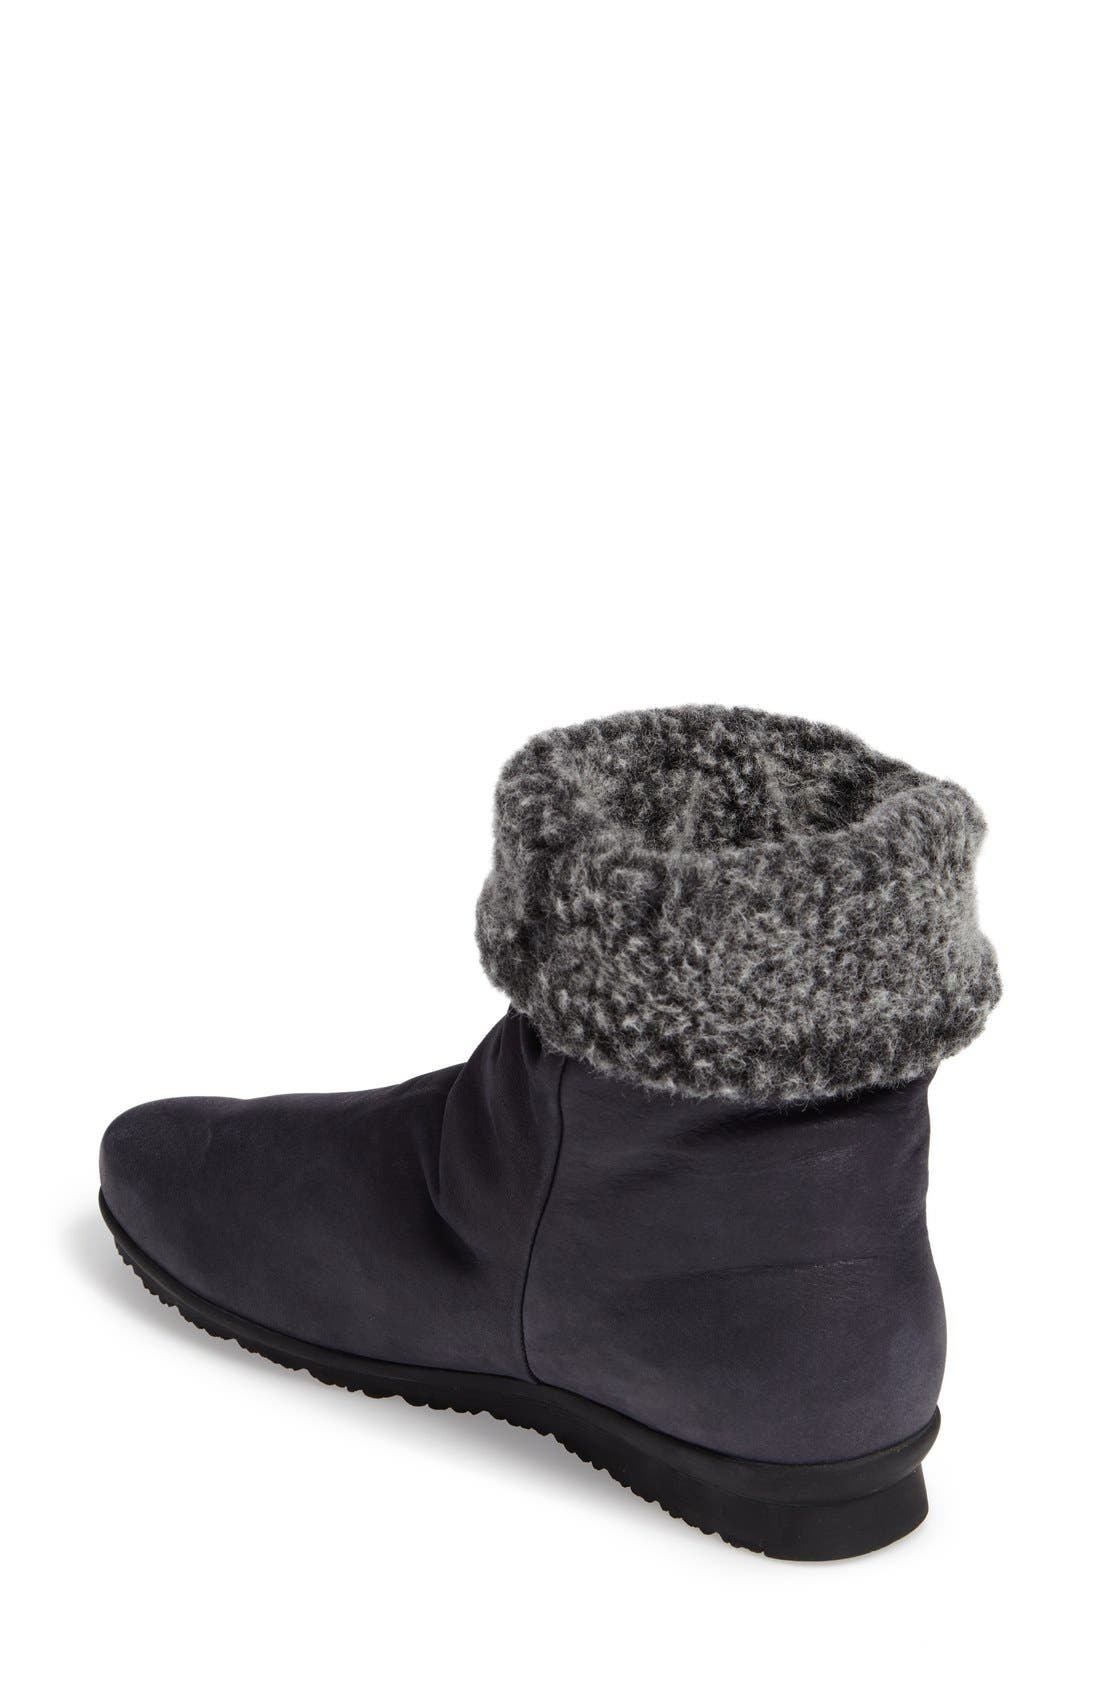 Barosa Faux Shearling Cuffed Bootie,                             Alternate thumbnail 6, color,